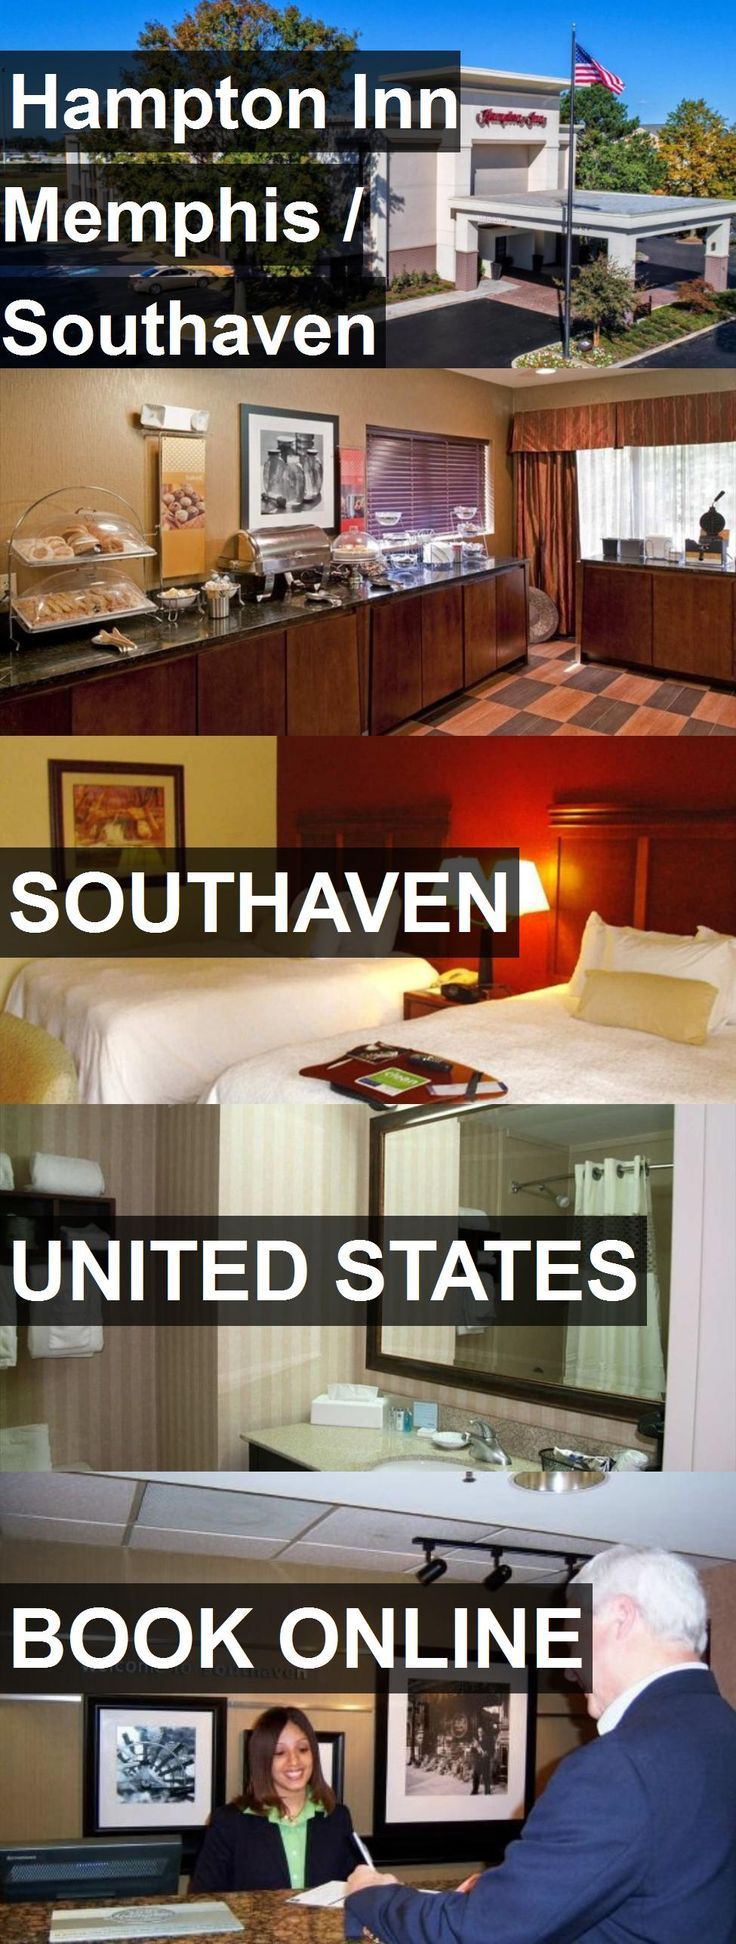 1 bedroom apartments midtown memphis tn%0A Hotel Hampton Inn Memphis   Southaven in Southaven  United States  For more  information